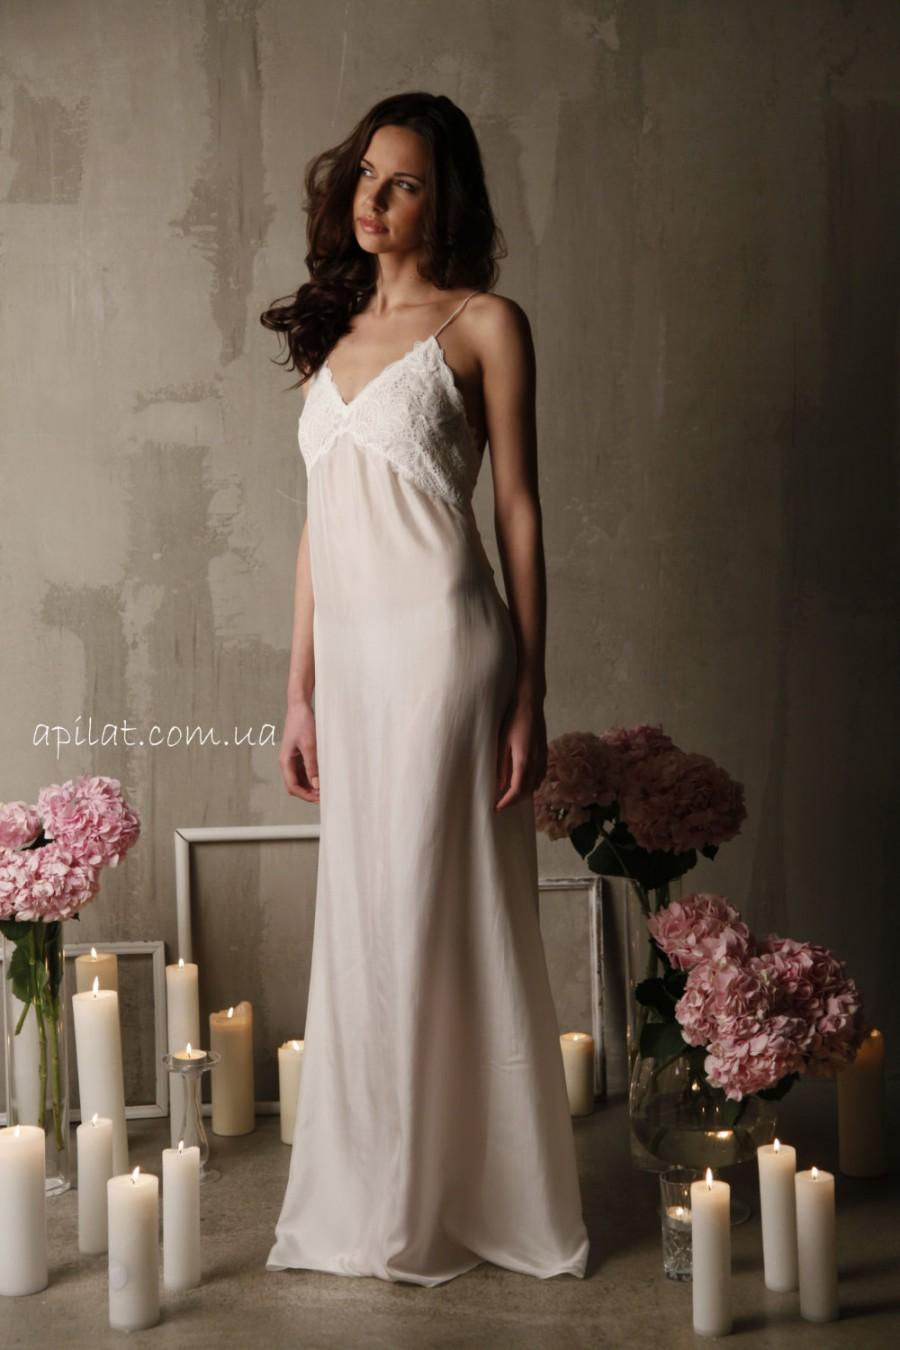 Long Silk Bridal Nightgown With Open Back And Lace F12(Lingerie ...